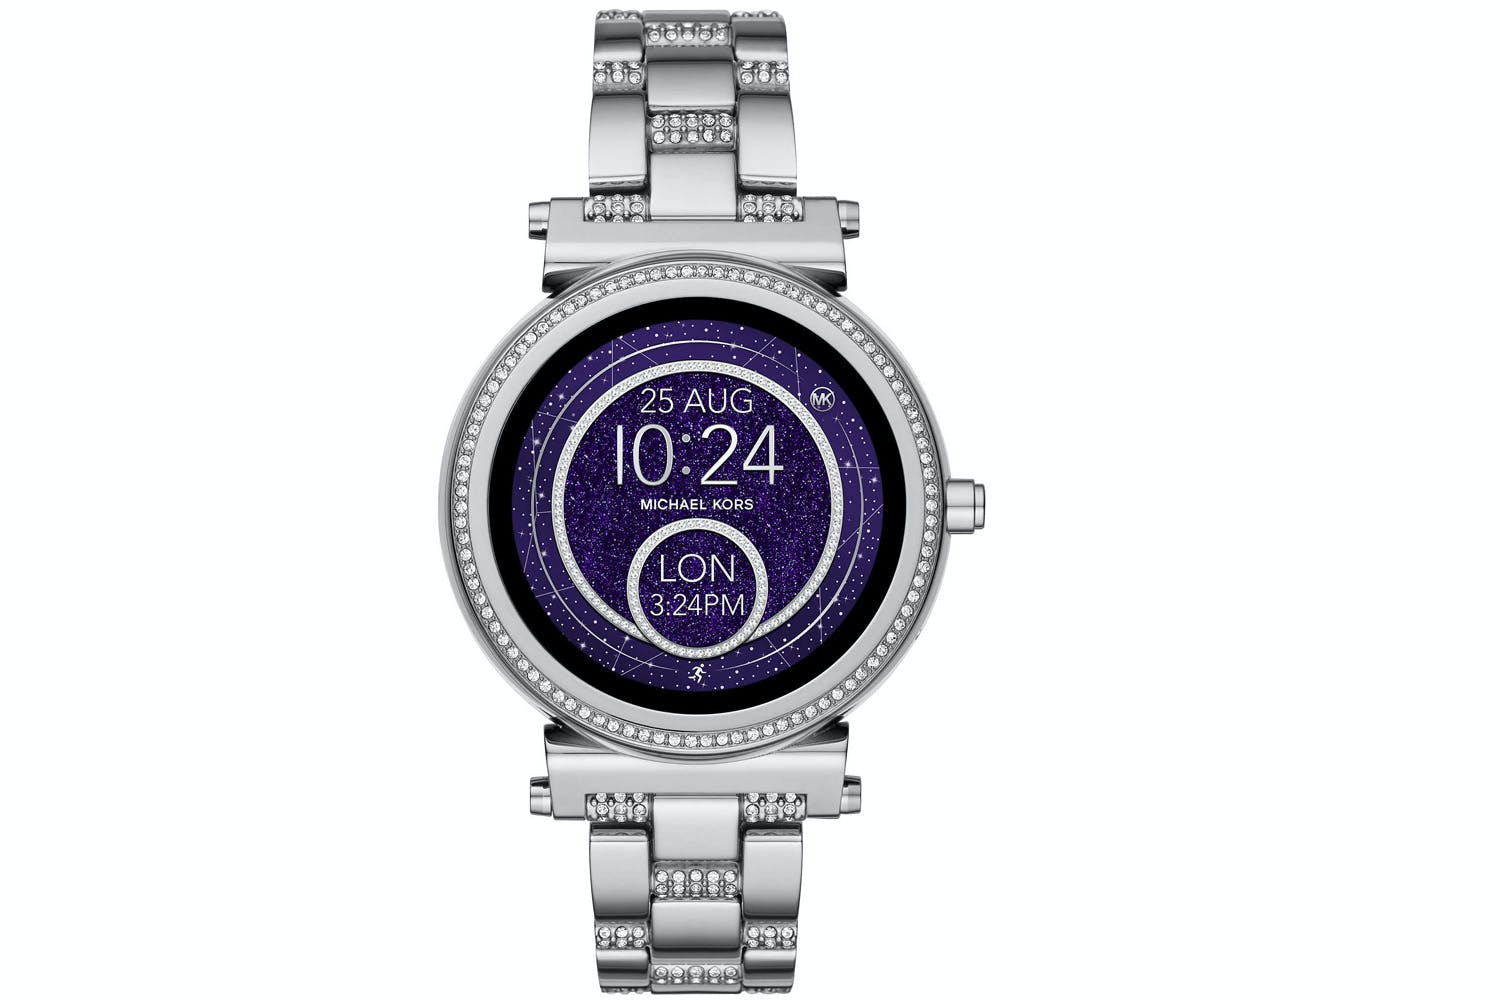 michael kors sofie pav silver tone smartwatch ireland. Black Bedroom Furniture Sets. Home Design Ideas